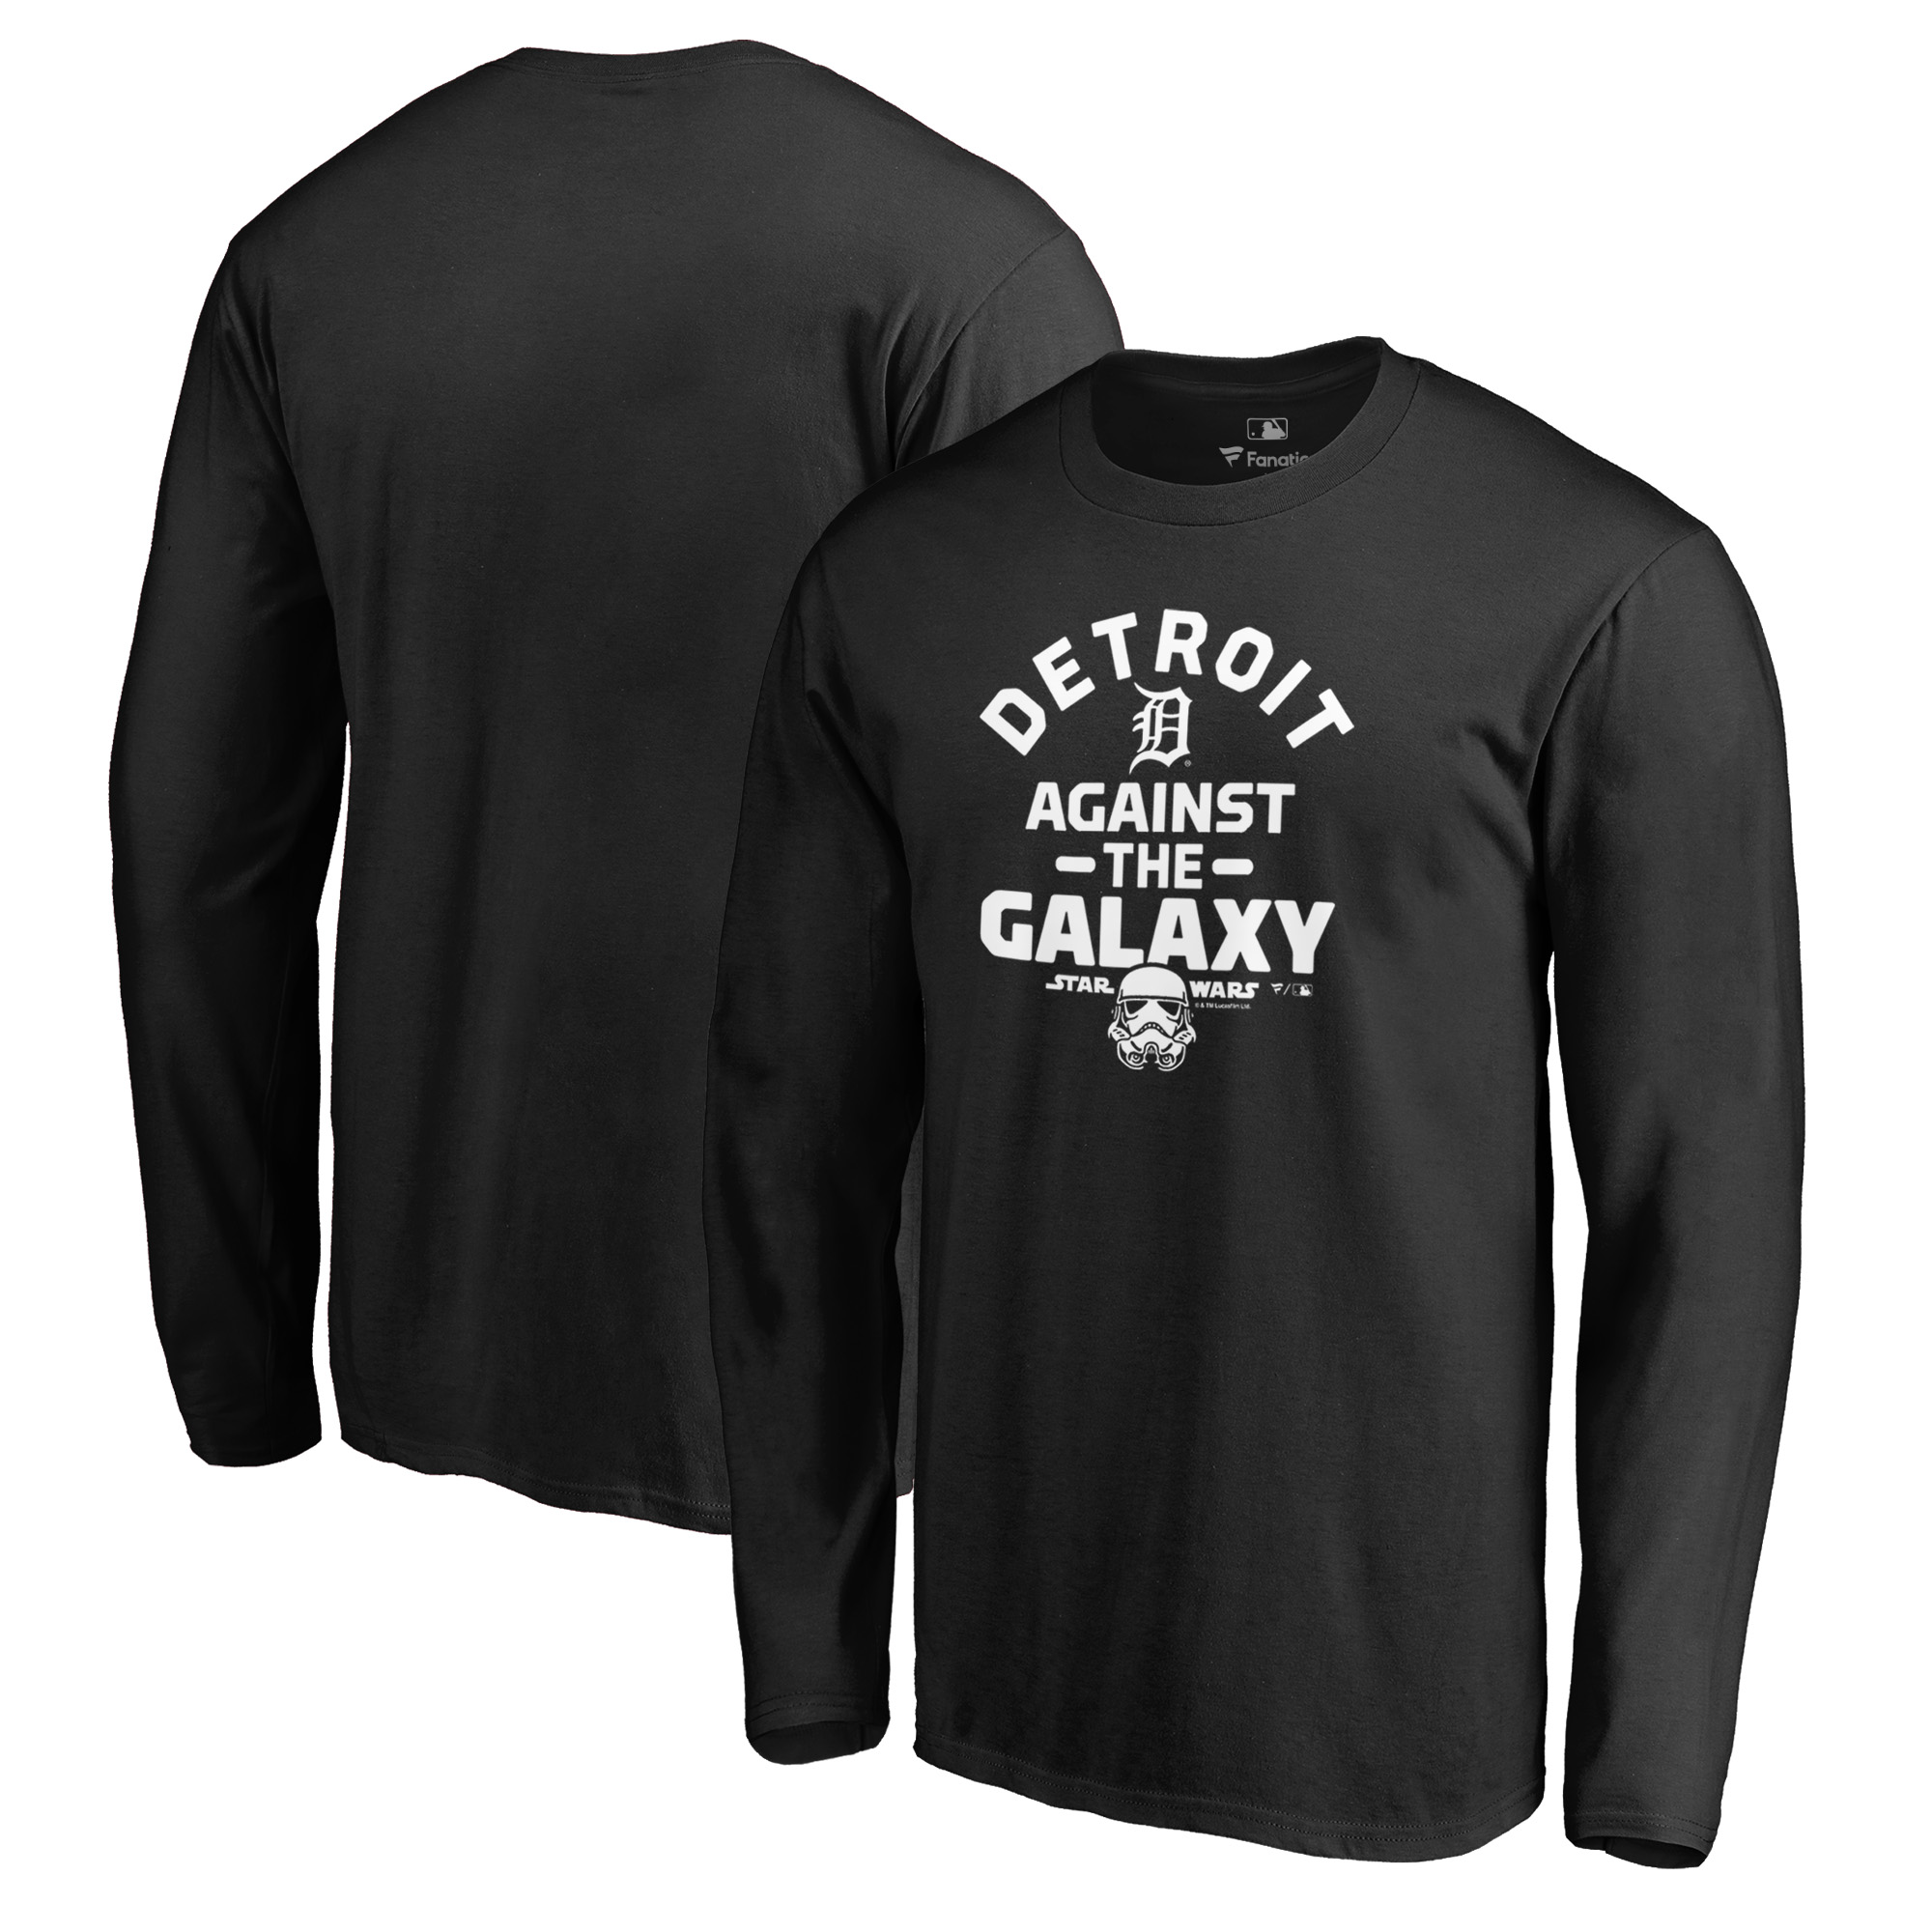 Detroit Tigers Fanatics Branded MLB Star Wars Against The Galaxy Long Sleeve T-Shirt - Black